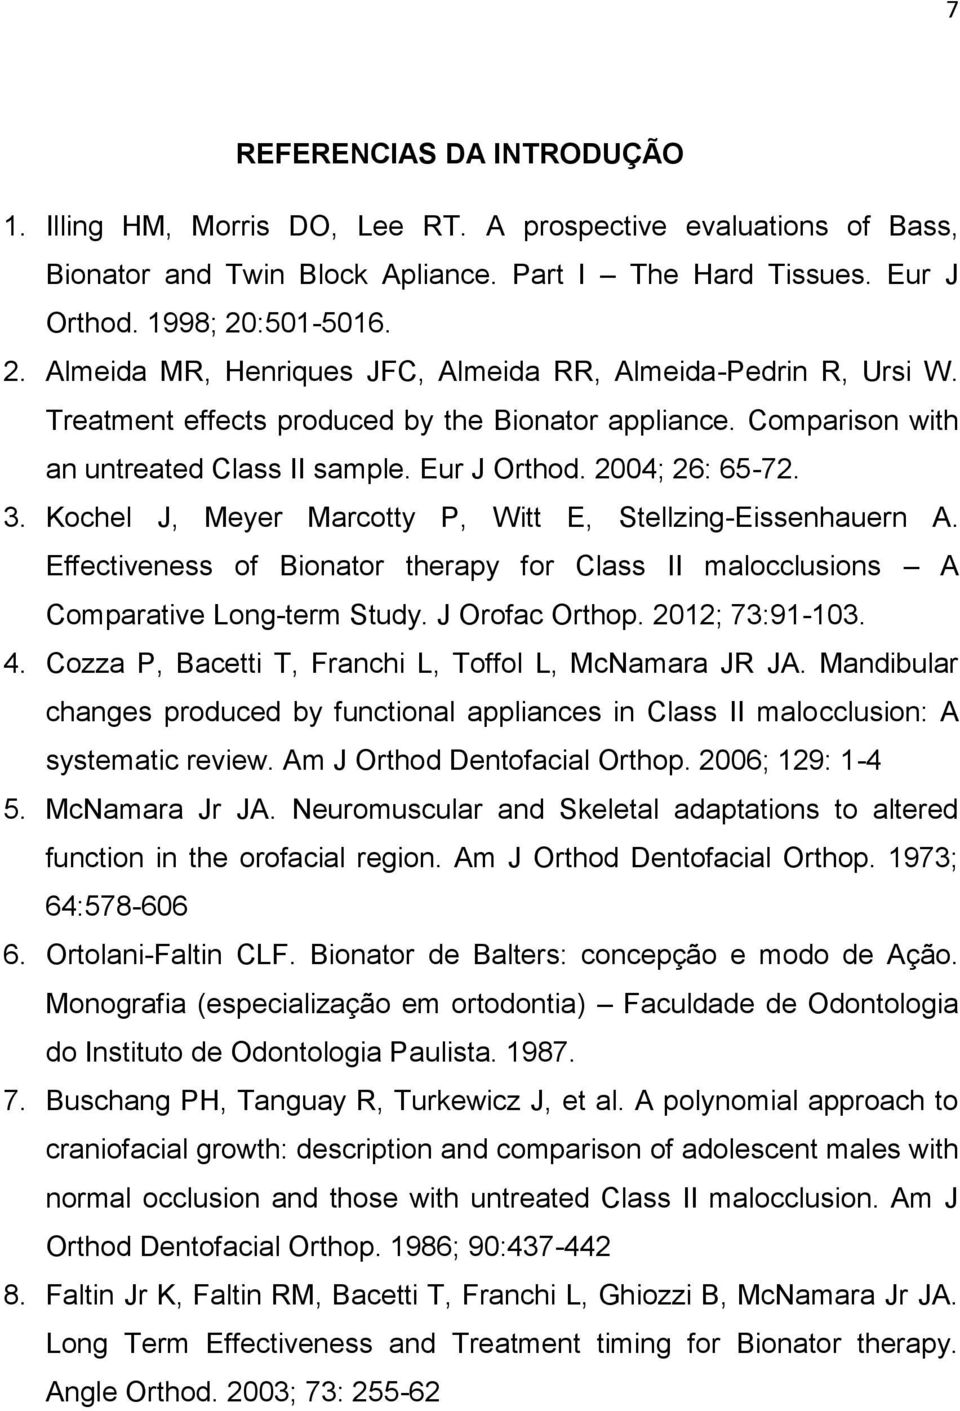 2004; 26: 65-72. 3. Kochel J, Meyer Marcotty P, Witt E, Stellzing-Eissenhauern A. Effectiveness of Bionator therapy for Class II malocclusions A Comparative Long-term Study. J Orofac Orthop.